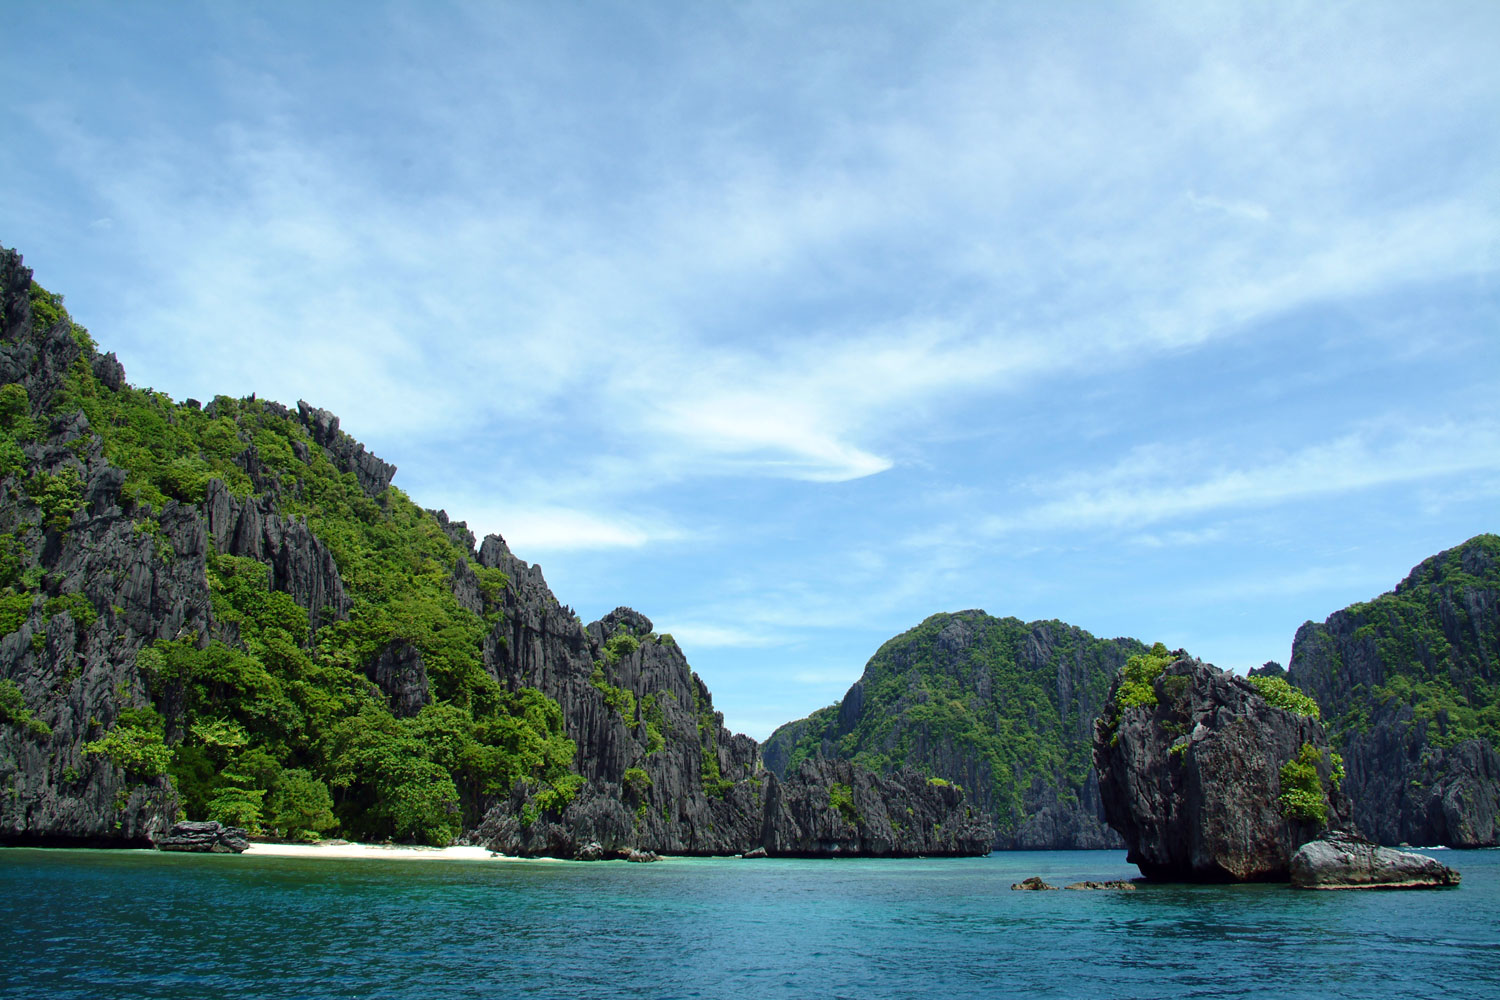 Palawan Tour. Buy Uncharted Philippines Gift Certificates and Gift Cards at Gifted.PH online for anyone in Manila Philippines